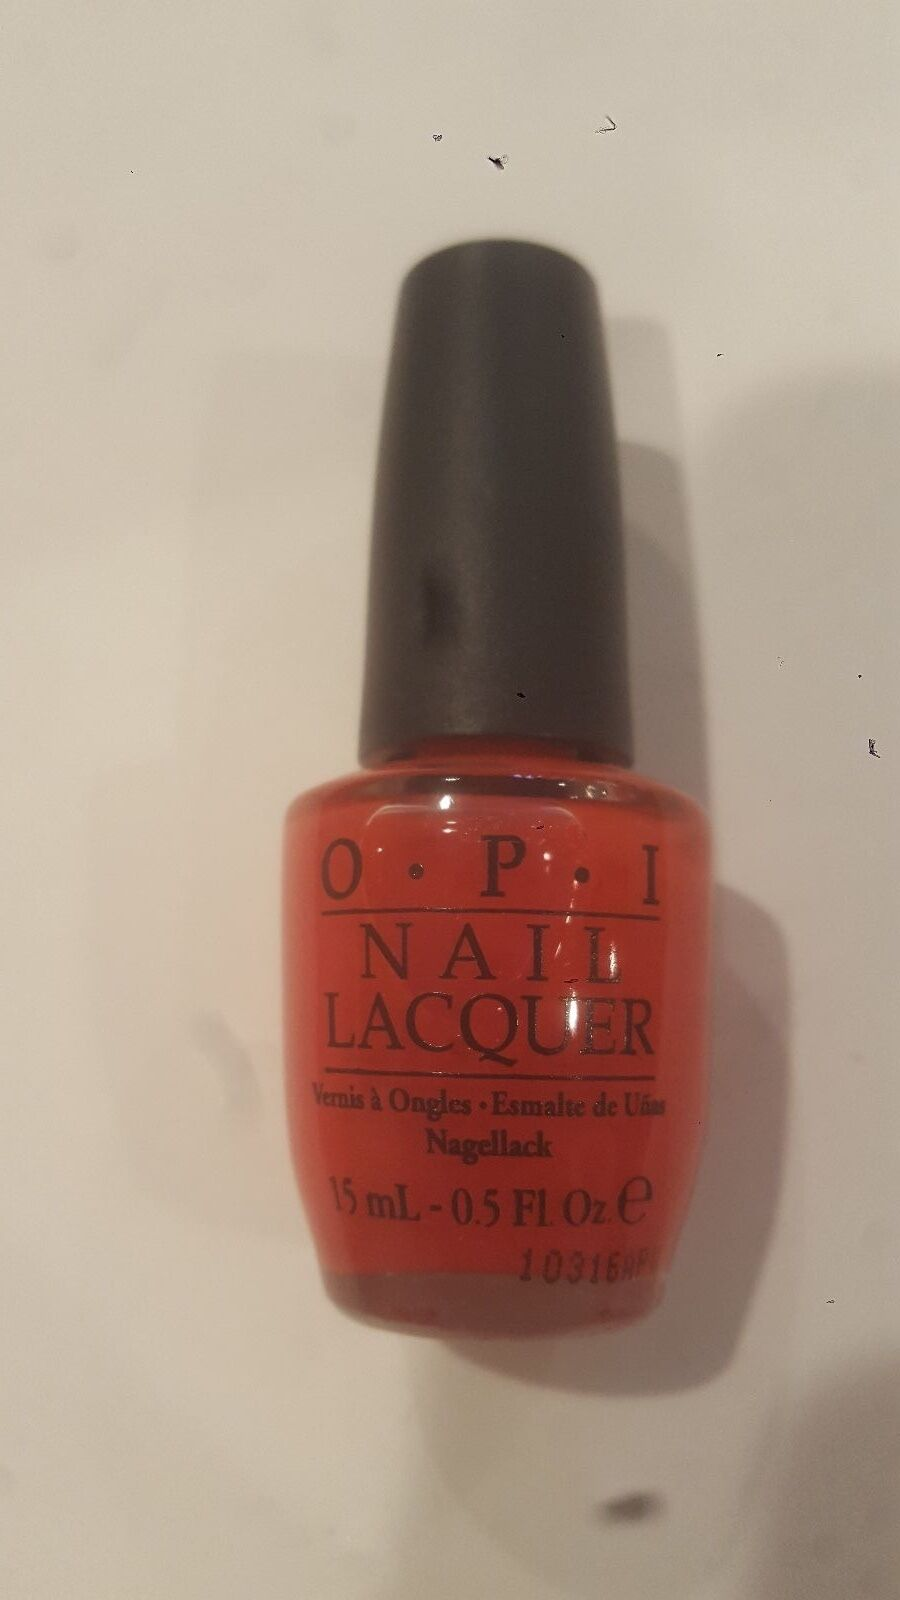 OPI Guy Meets Gal Veston Red Nail Lacquer | eBay